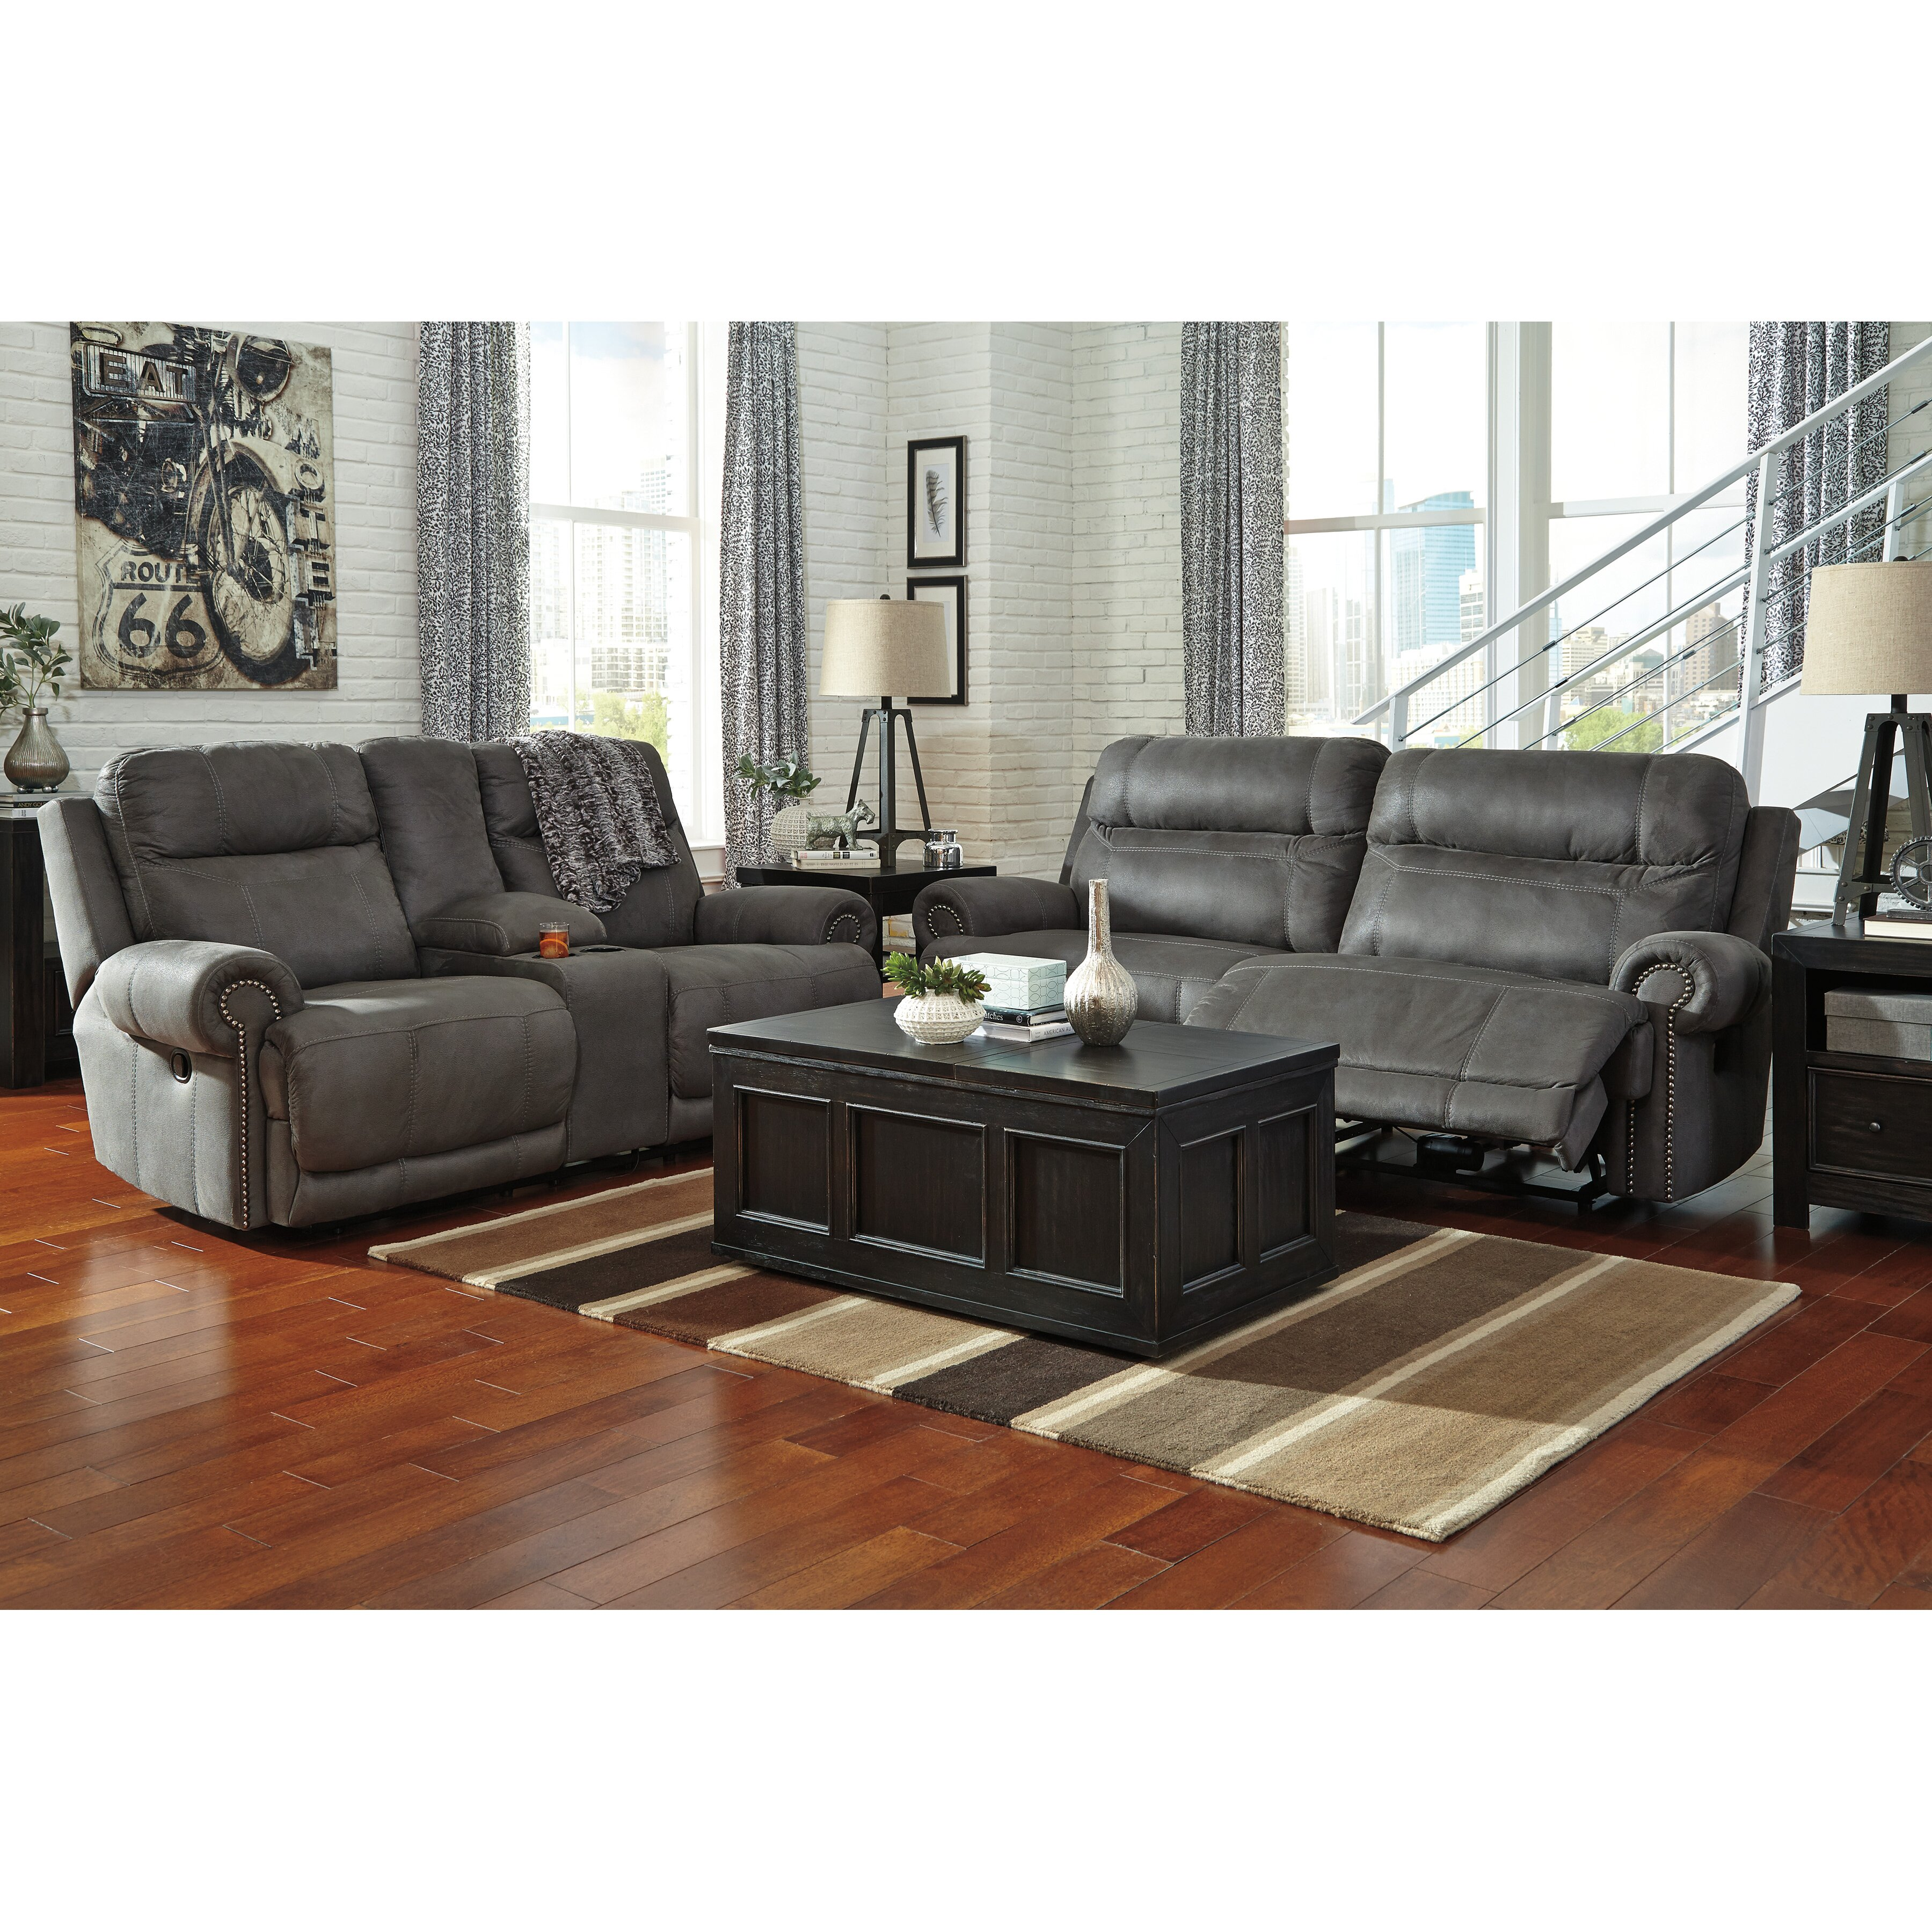 Signature Design By Ashley Austere 2 Seat Reclining Sofa